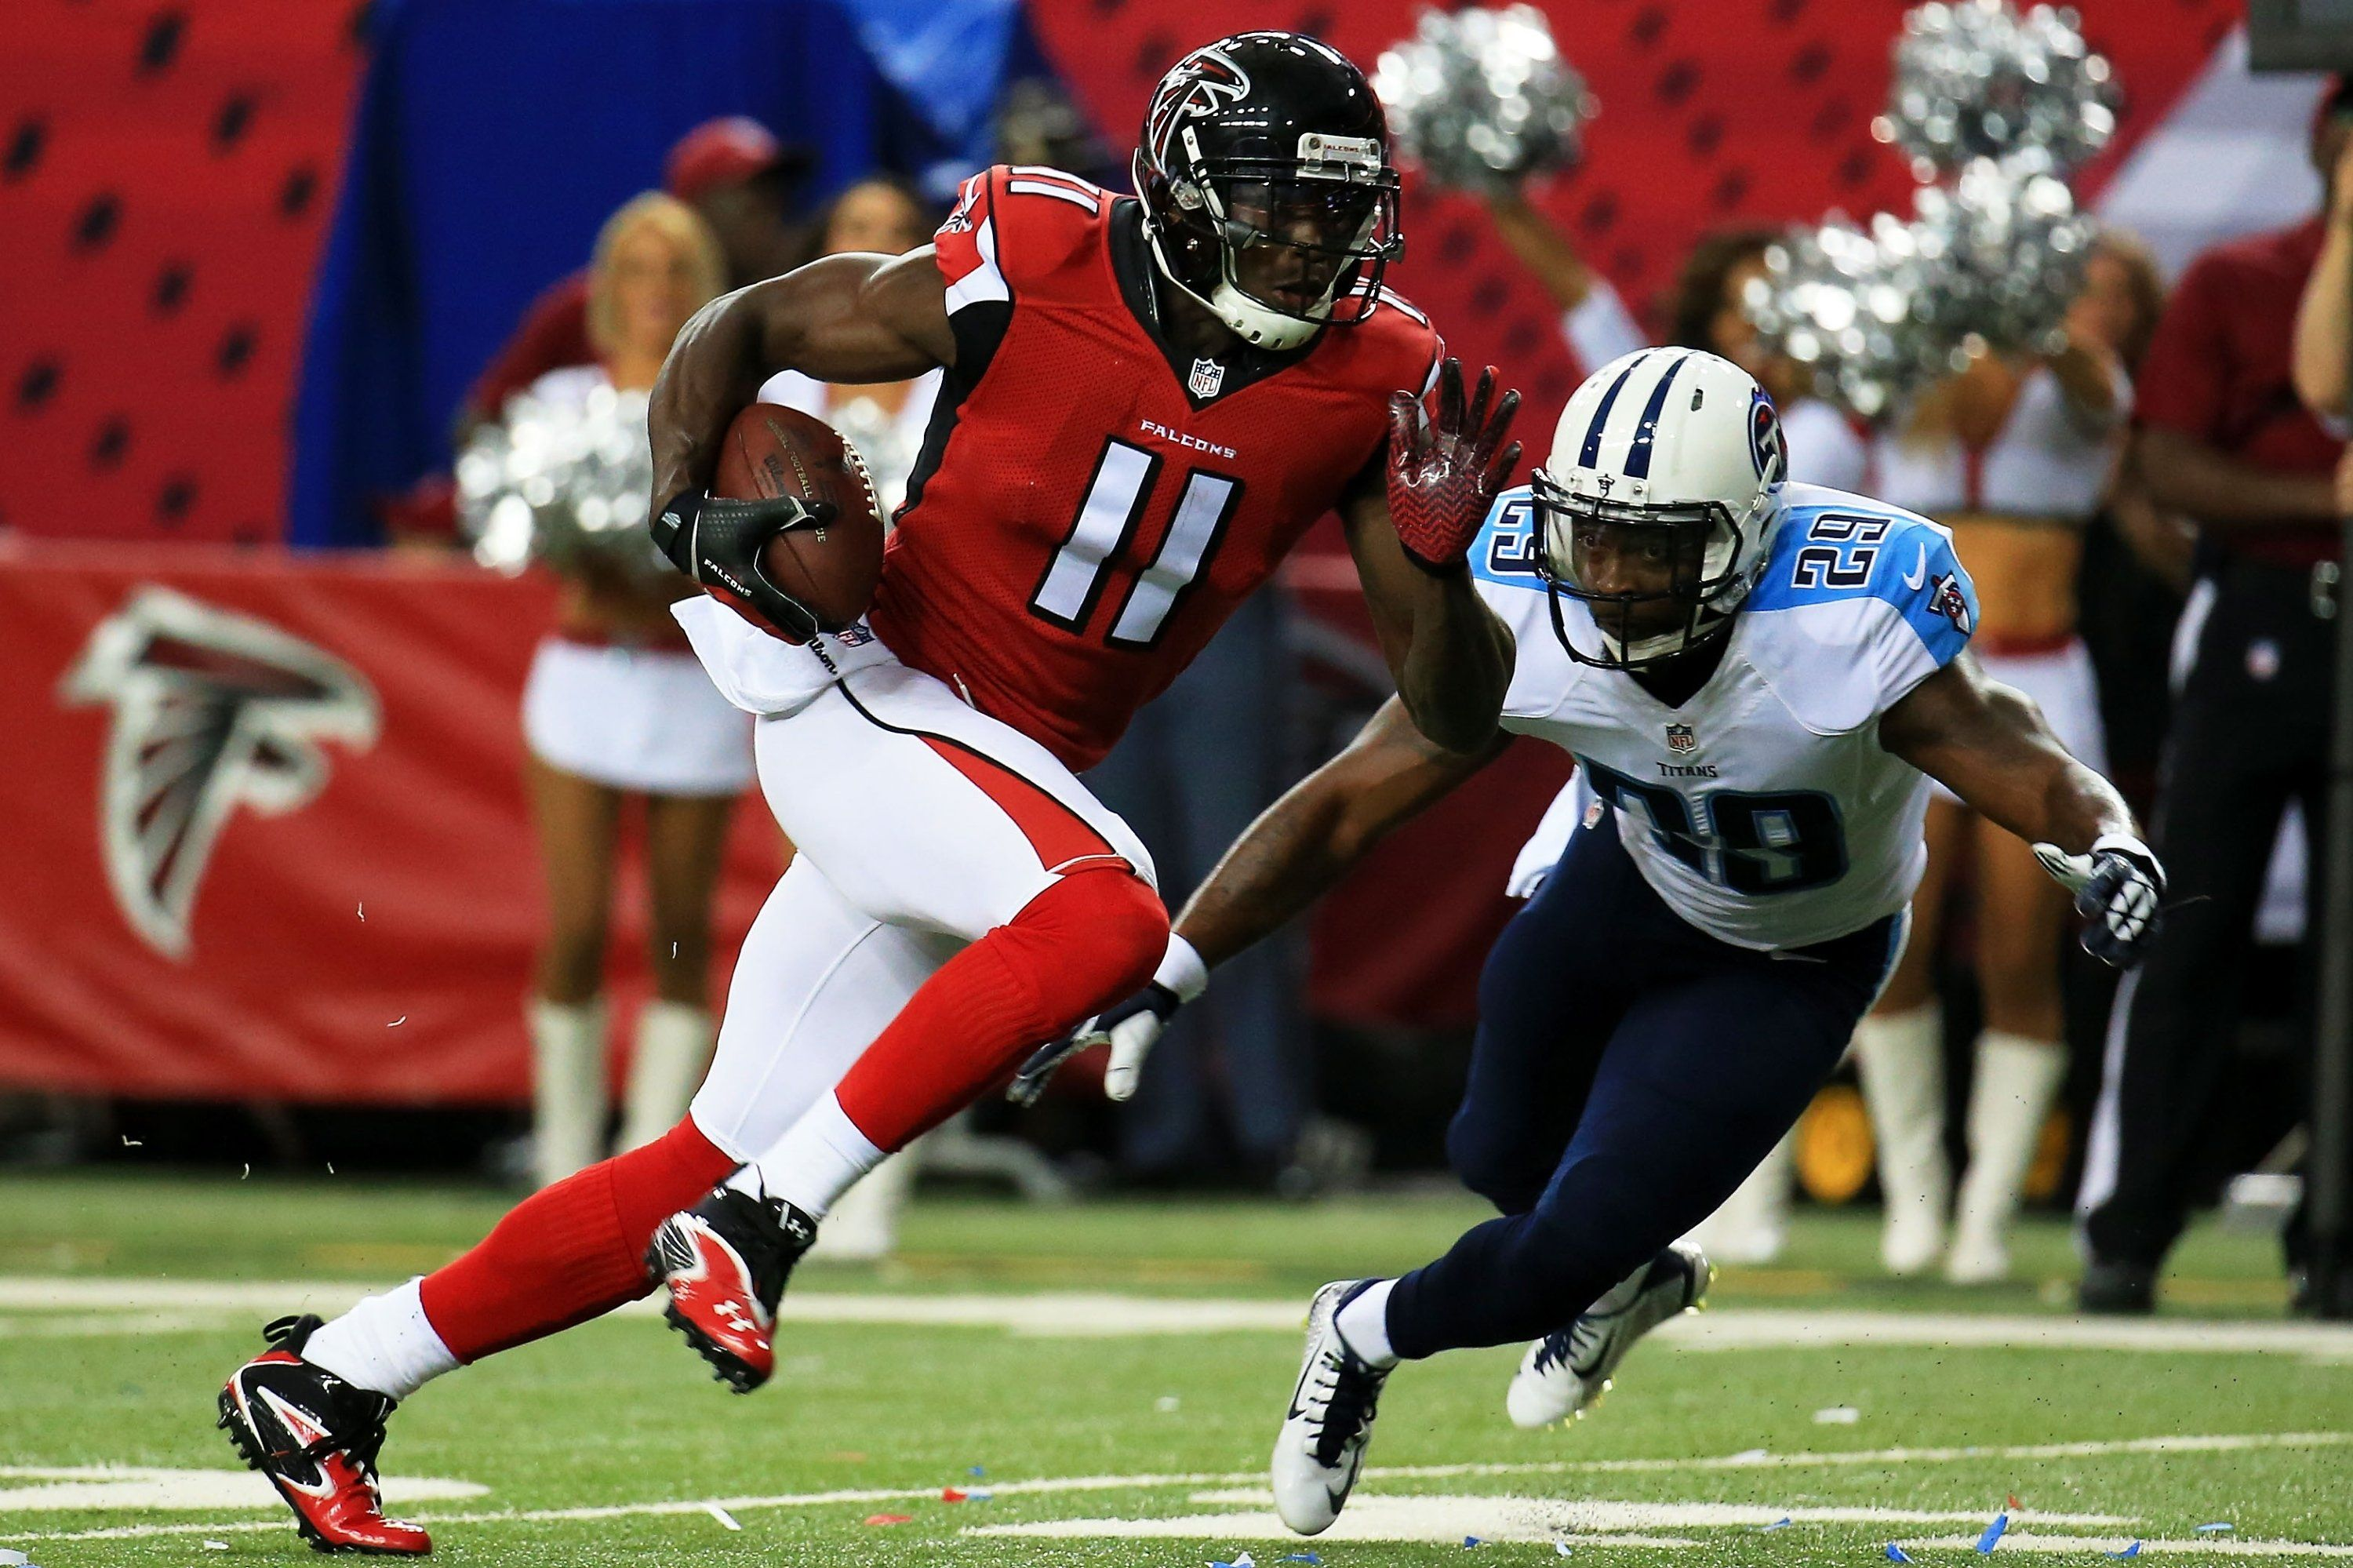 Mostly Nfl Notes Talking Julio Jones C J Anderson And A Look Around The League Julio Jones Nfl Odds Atlanta